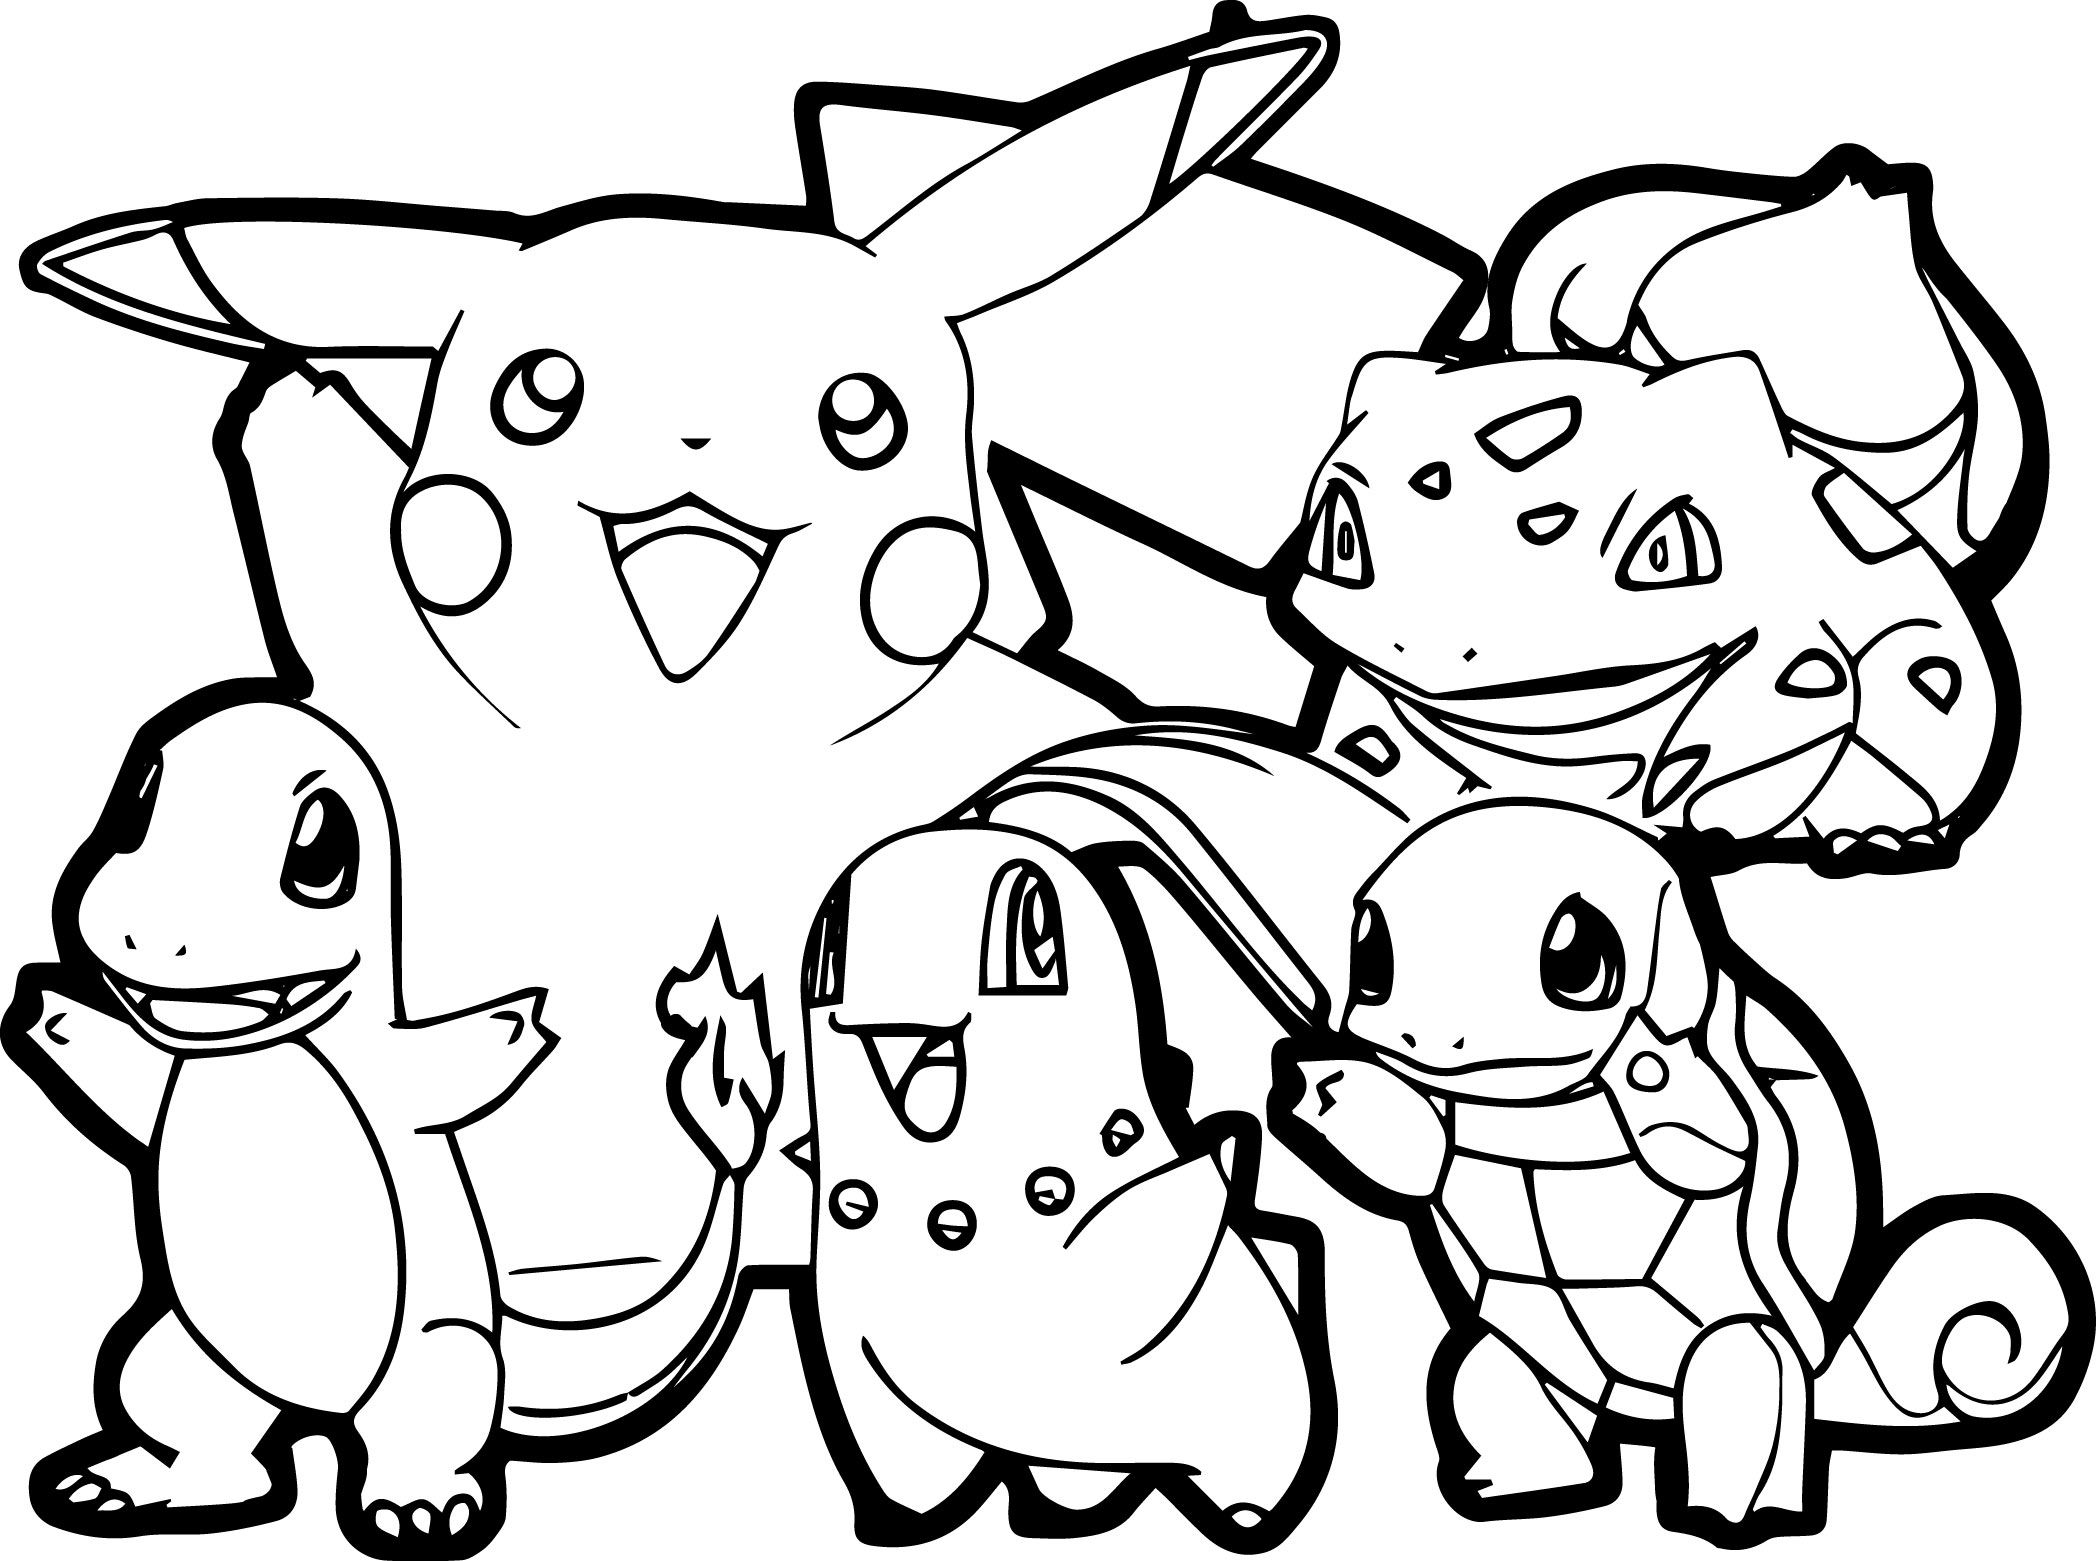 27 Inspiration Image Of Free Printable Pokemon Coloring Pages Entitlementtrap Com In 2020 Pikachu Coloring Page Pokemon Coloring Pokemon Coloring Sheets